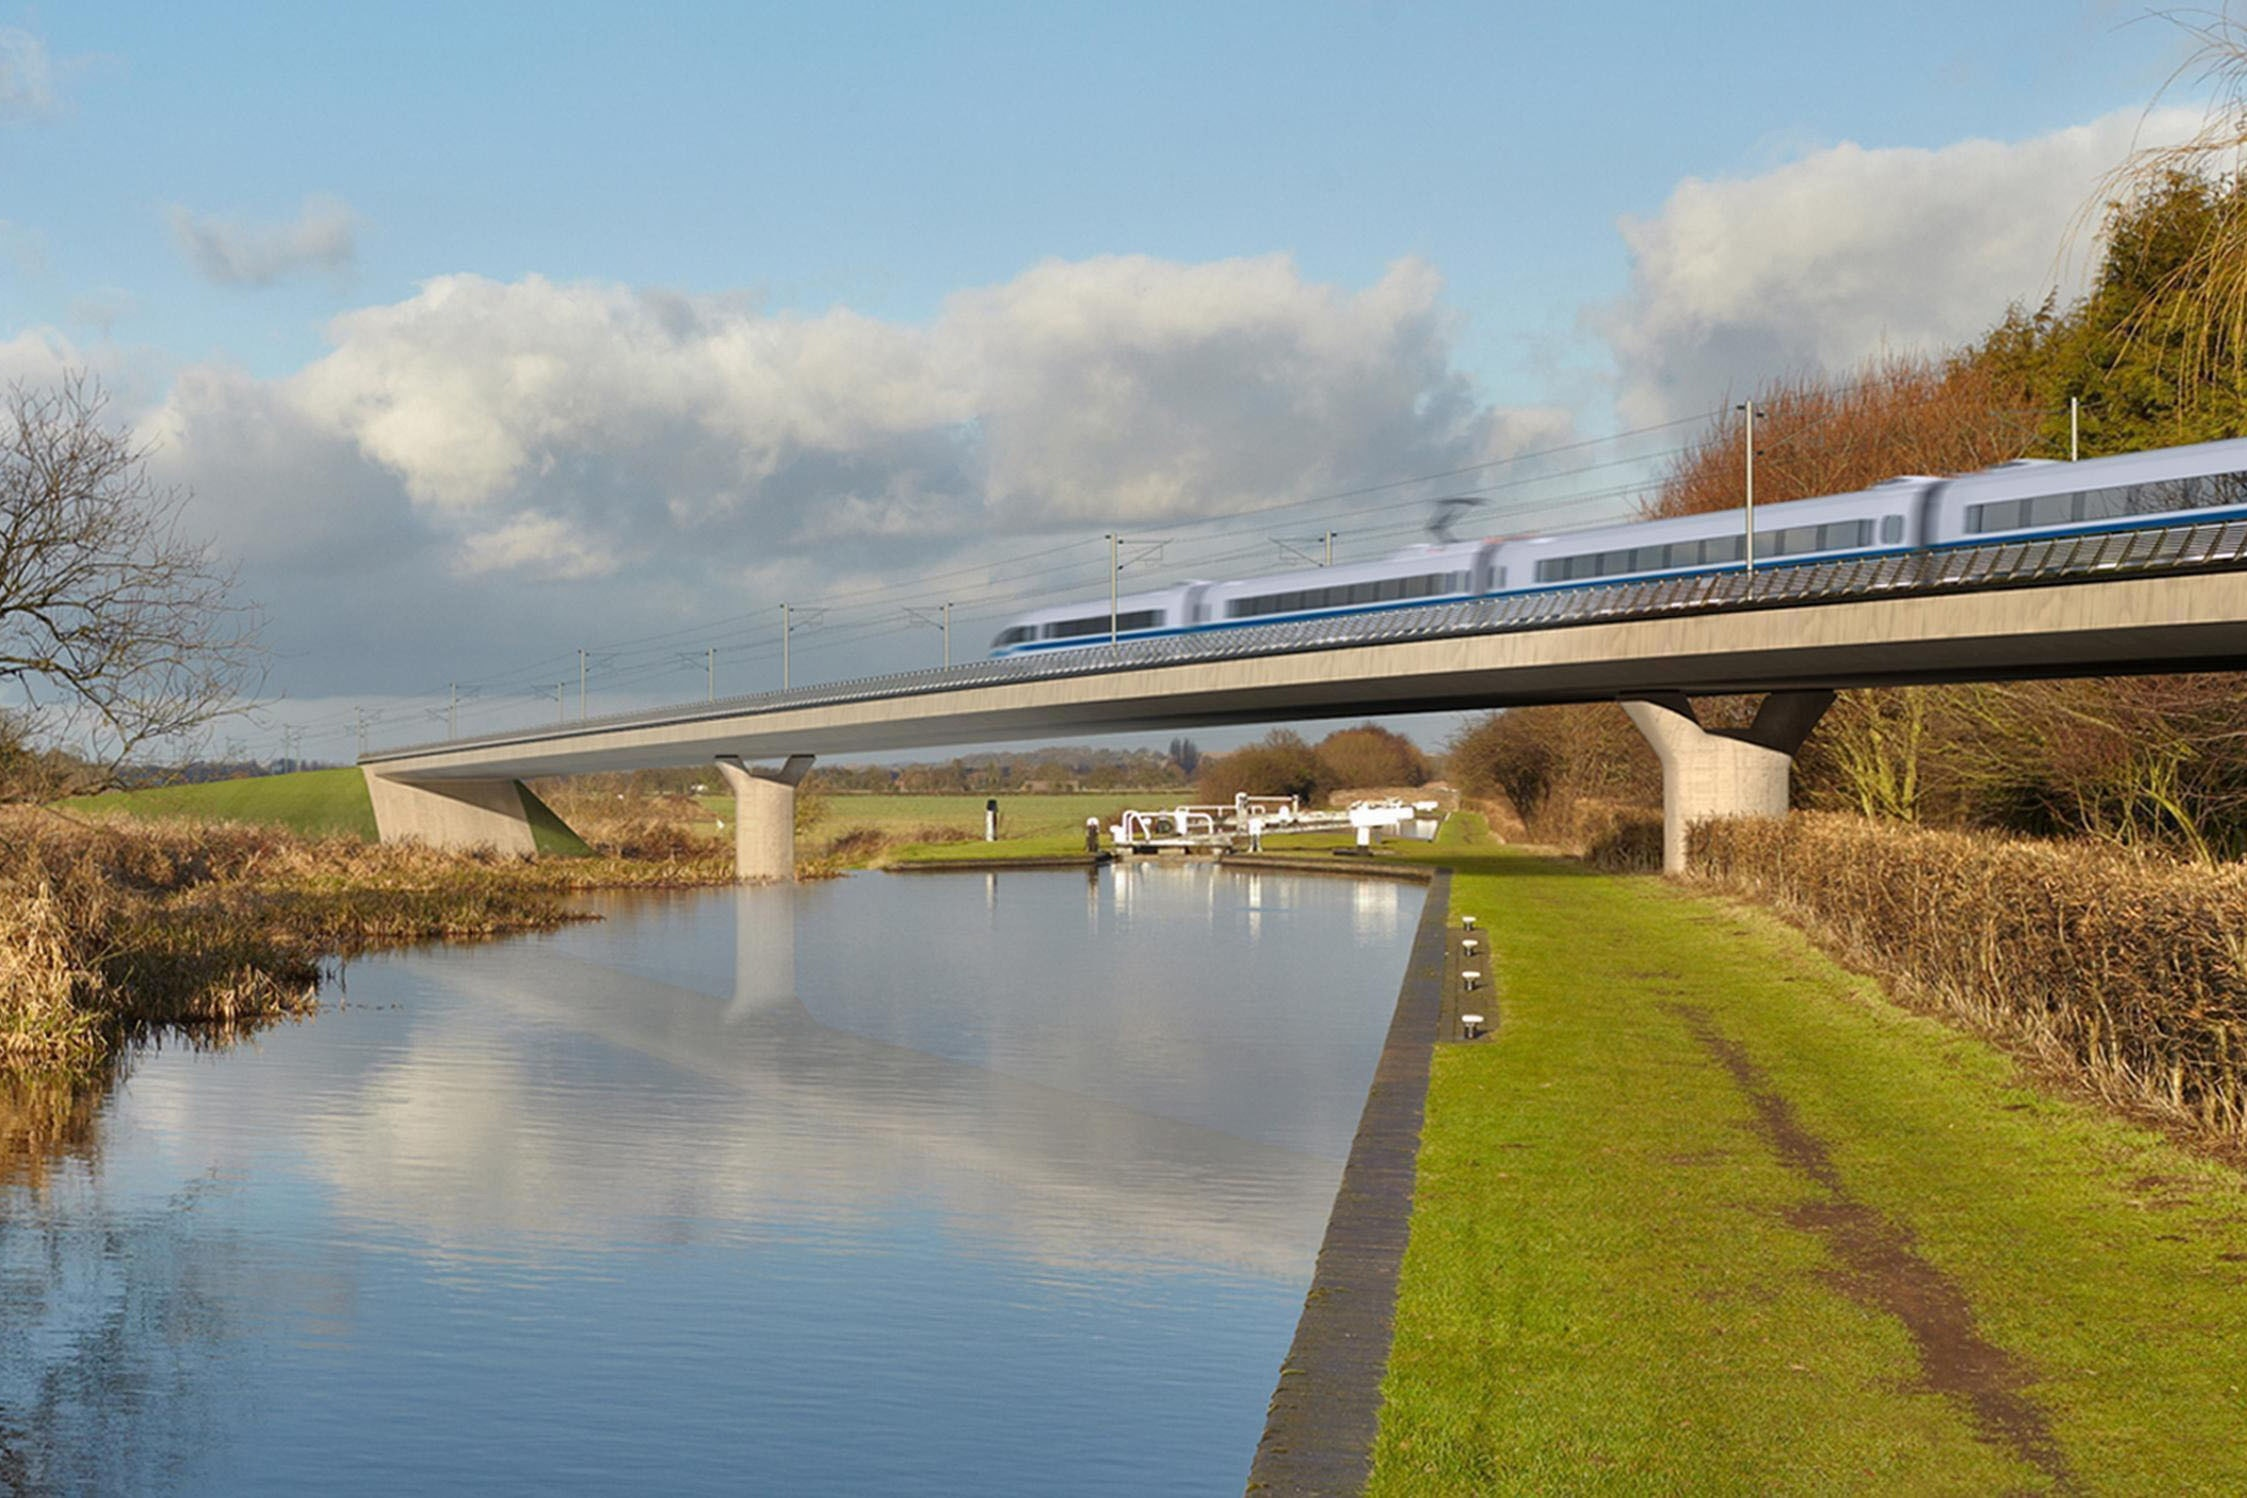 HS2: Plans for nearly half a million jobs 'just the beginning'